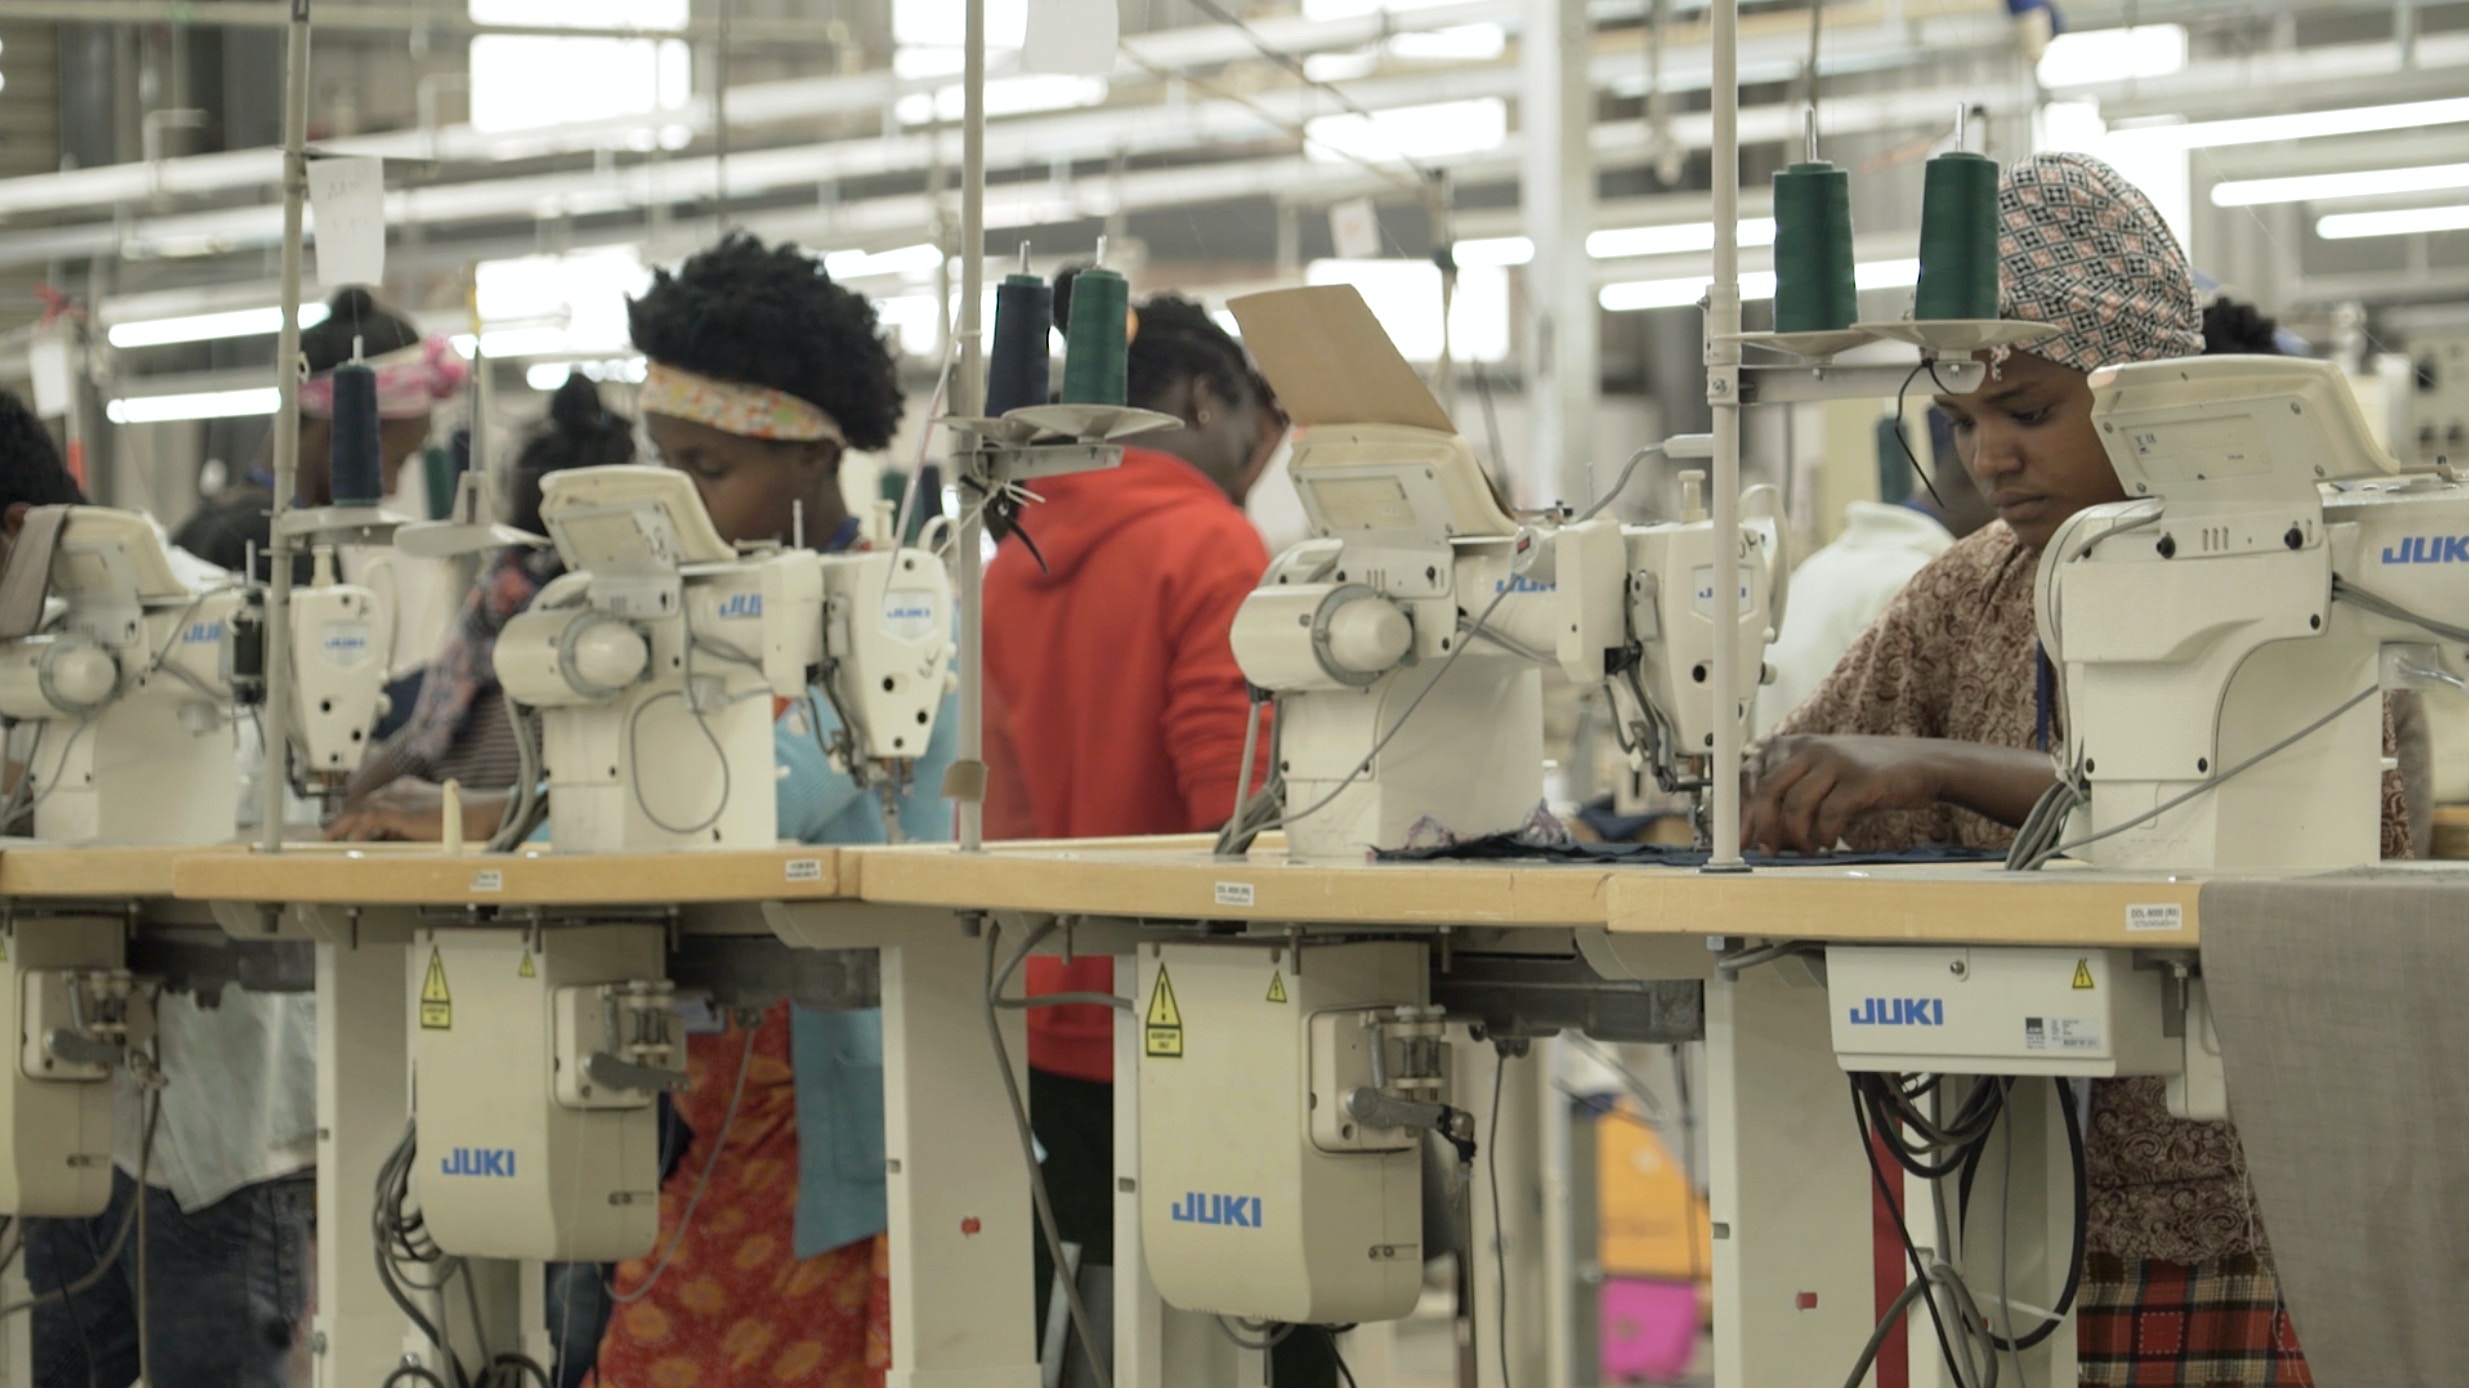 hawassa-workers-factory-clothing-1530804219